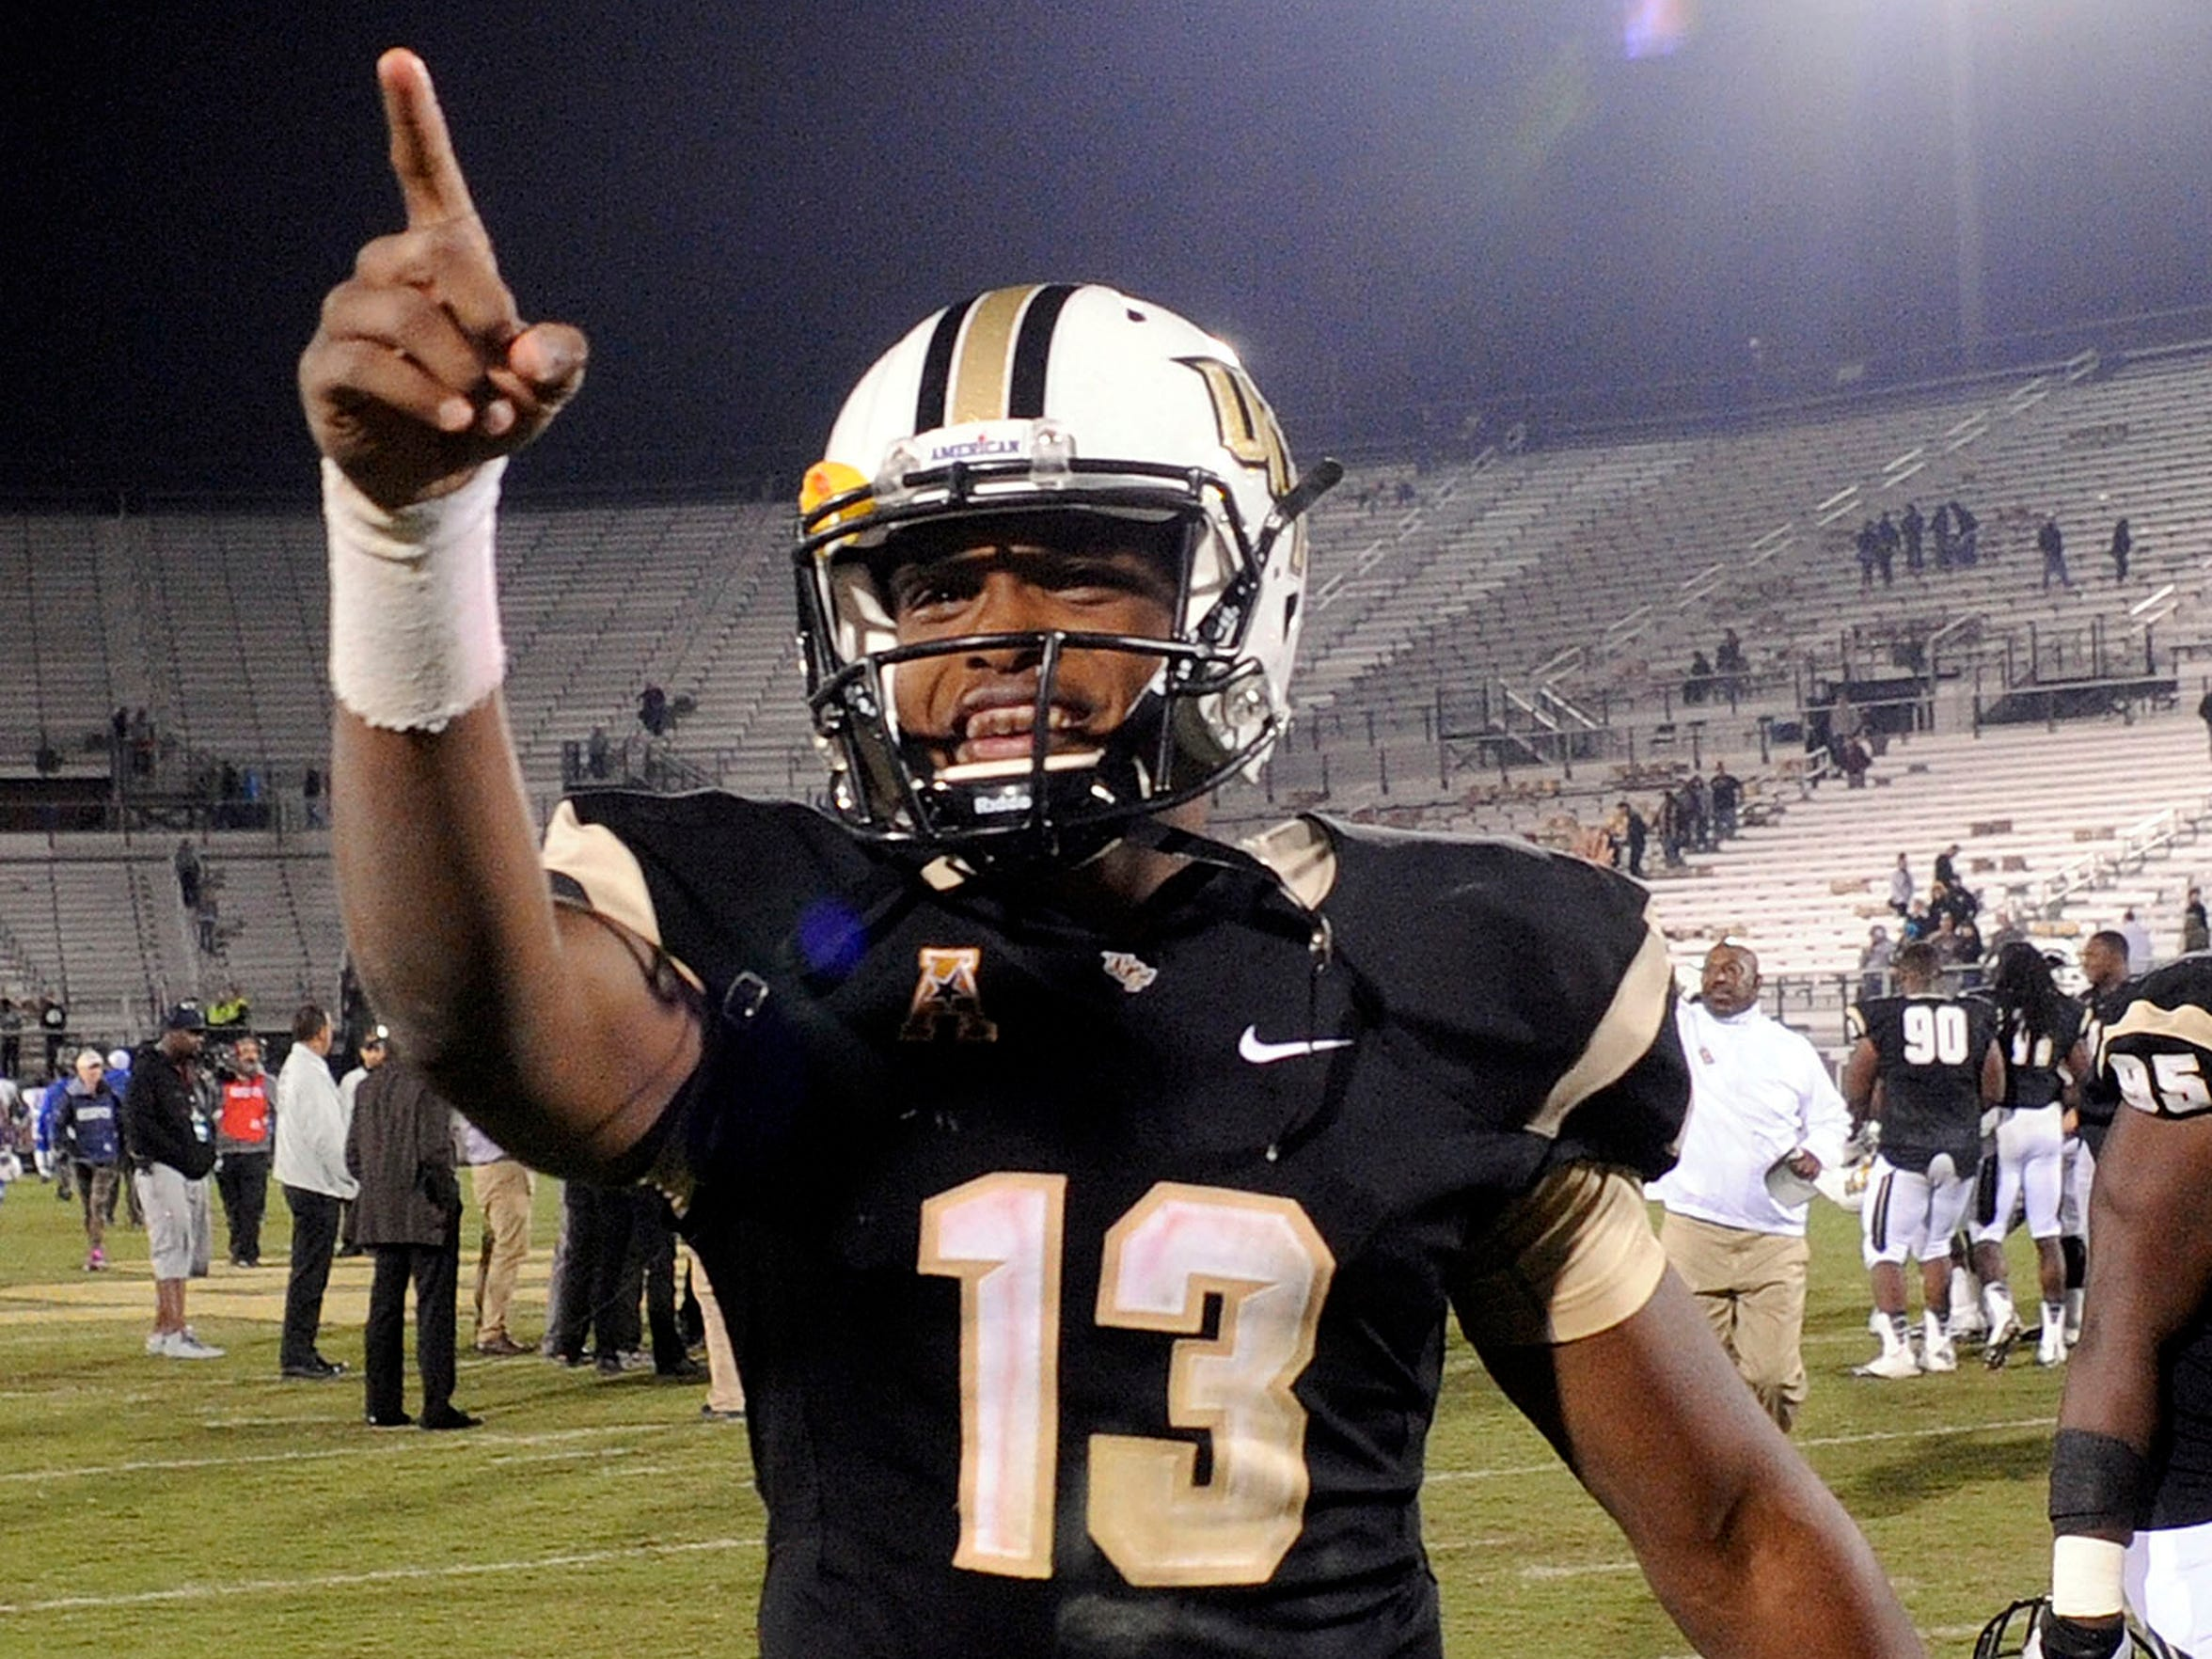 UCF is happy to have Justin Holman back as its starter